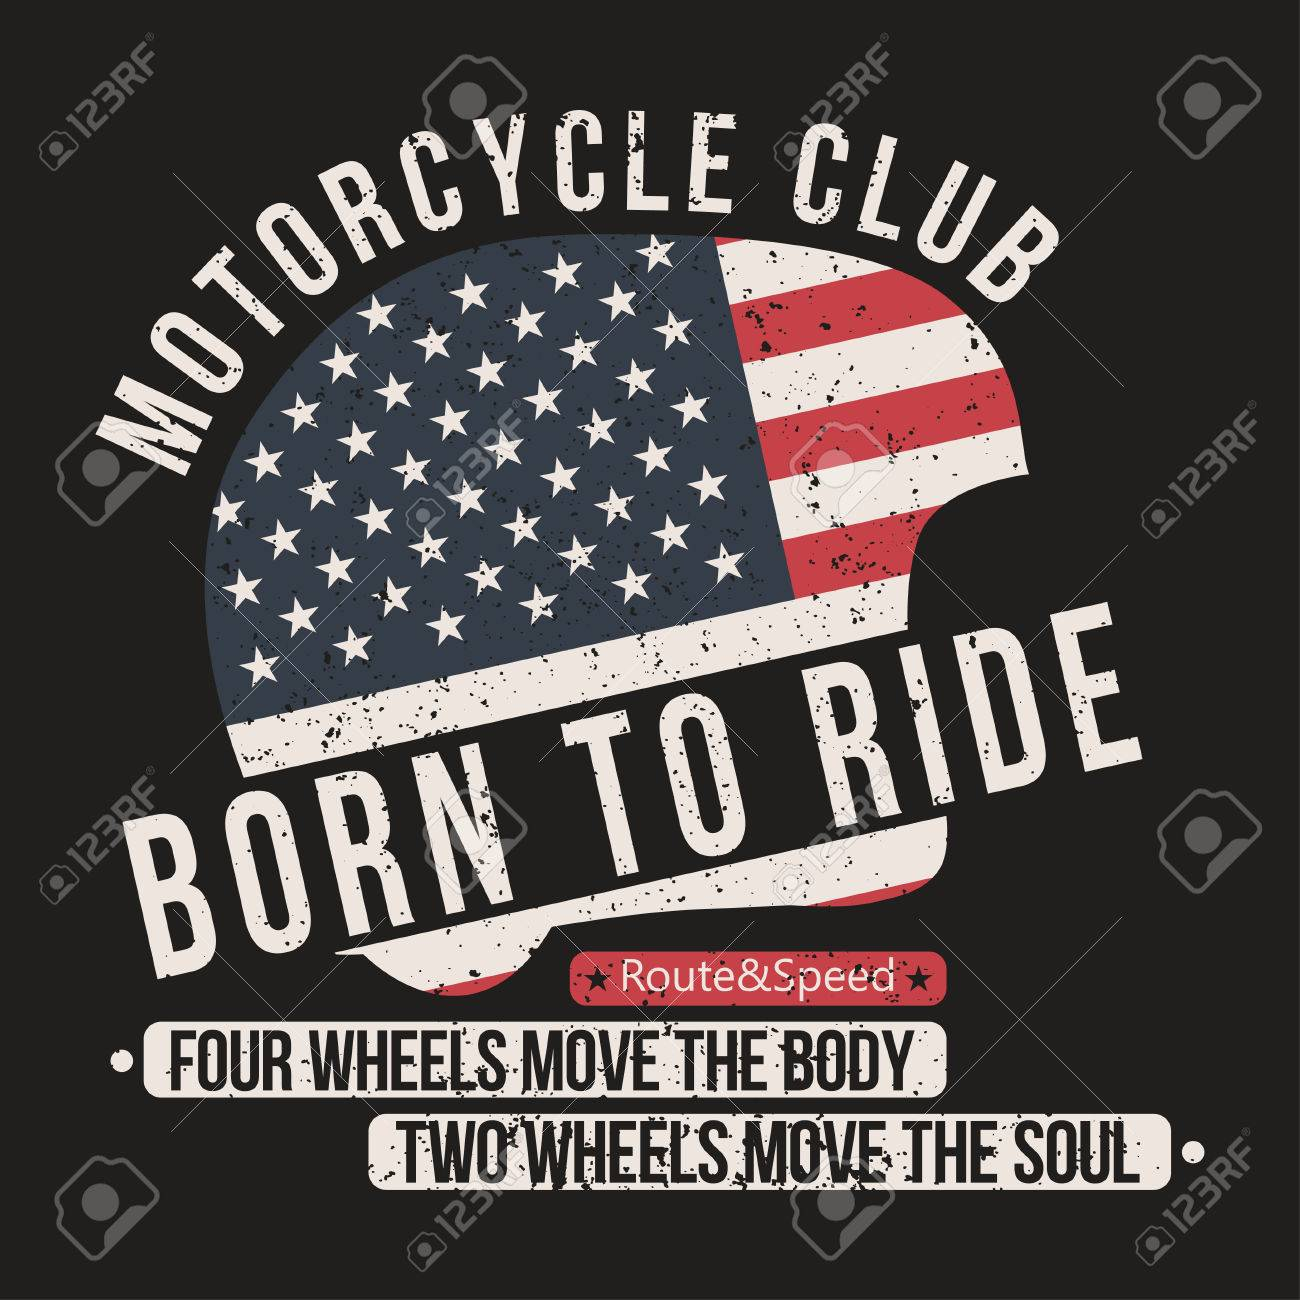 Motorcycle t-shirt graphics. Helmet with USA flag and lettering Motorcycle club, Born to ride and motivation quote. Vintage typography for apparel, poster, badge. Vector - 78796389